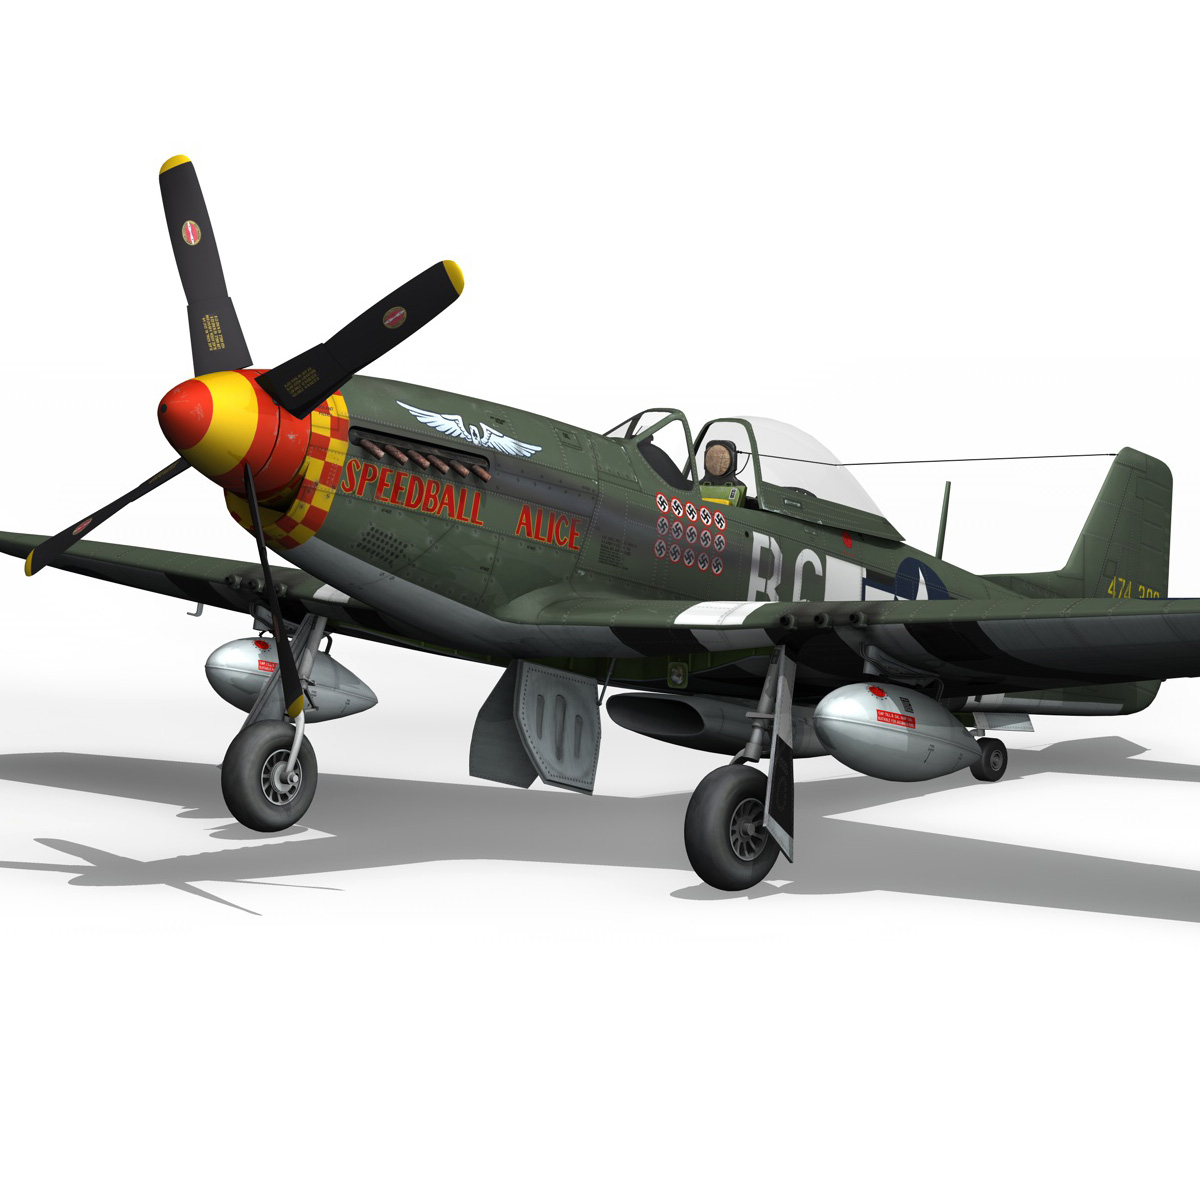 north american p-51d mustang – speedball alice 3d model fbx c4d lwo obj 280319